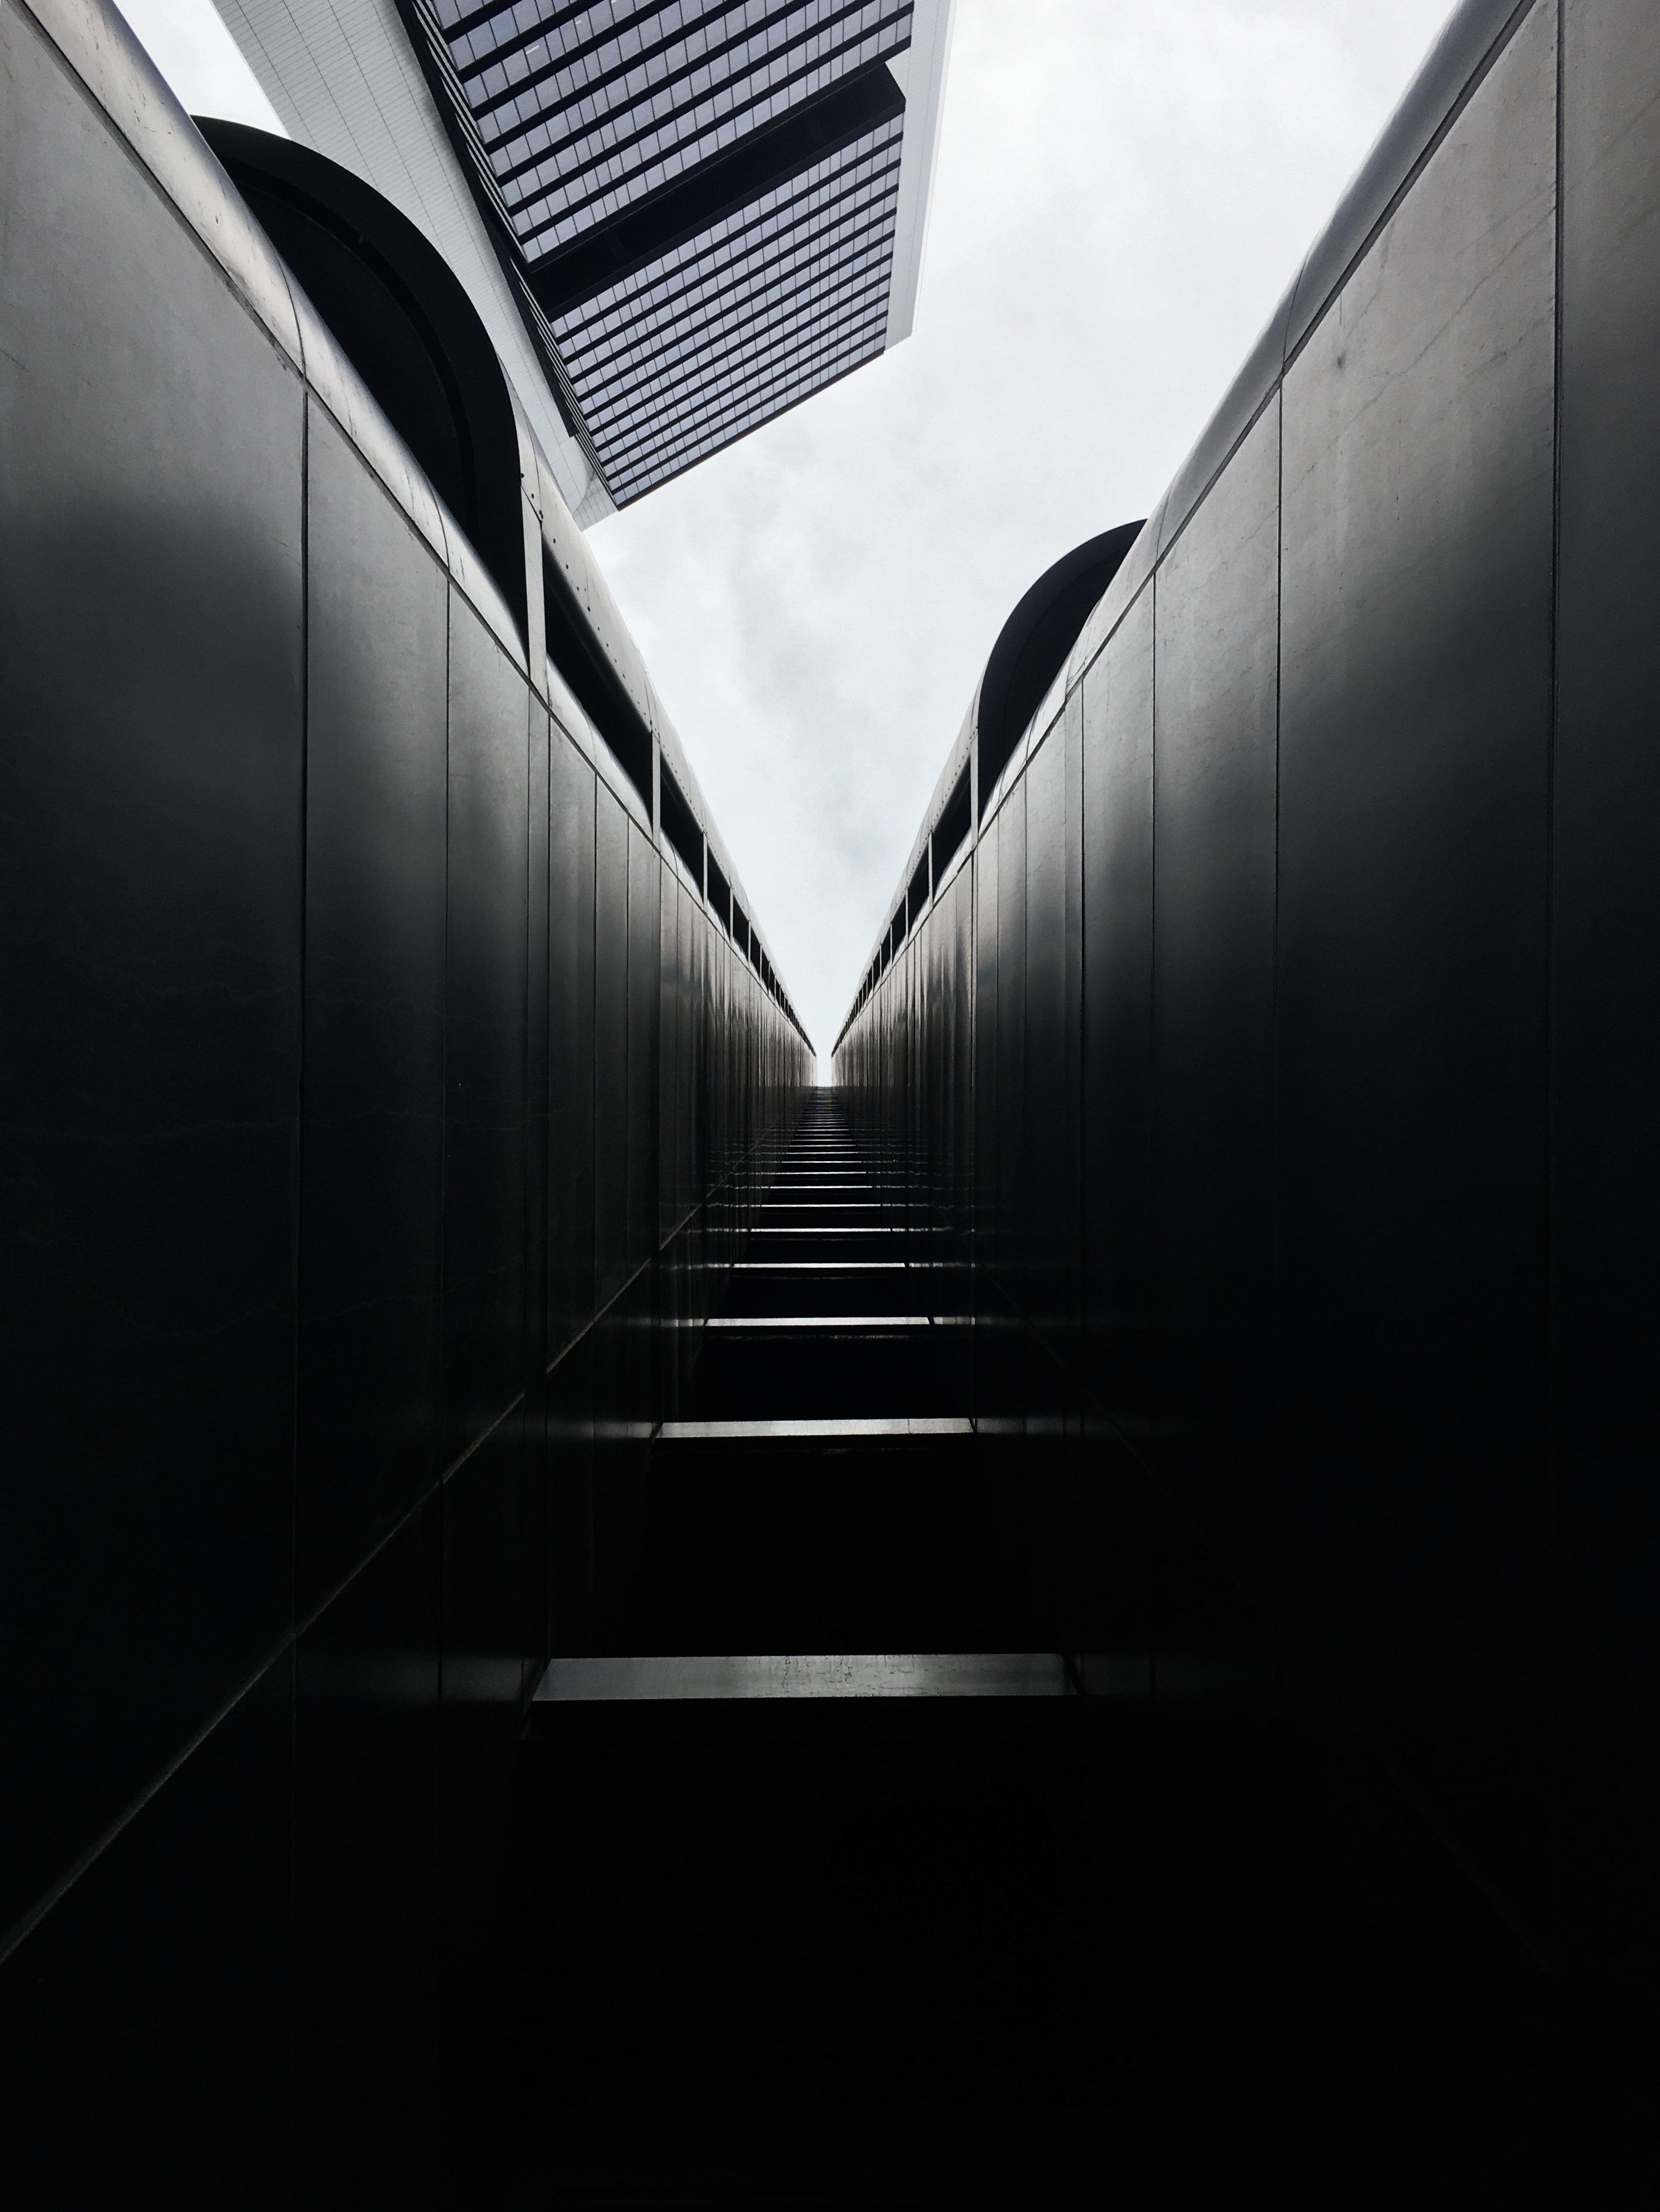 In Madrid, there's a building that has an entrance that sort of looks like a tunnel to the sky. It also looks like stairs but in reality, all I had to do was put my camera flat on the floor, set a timer for the picture and let my phone do all the work.